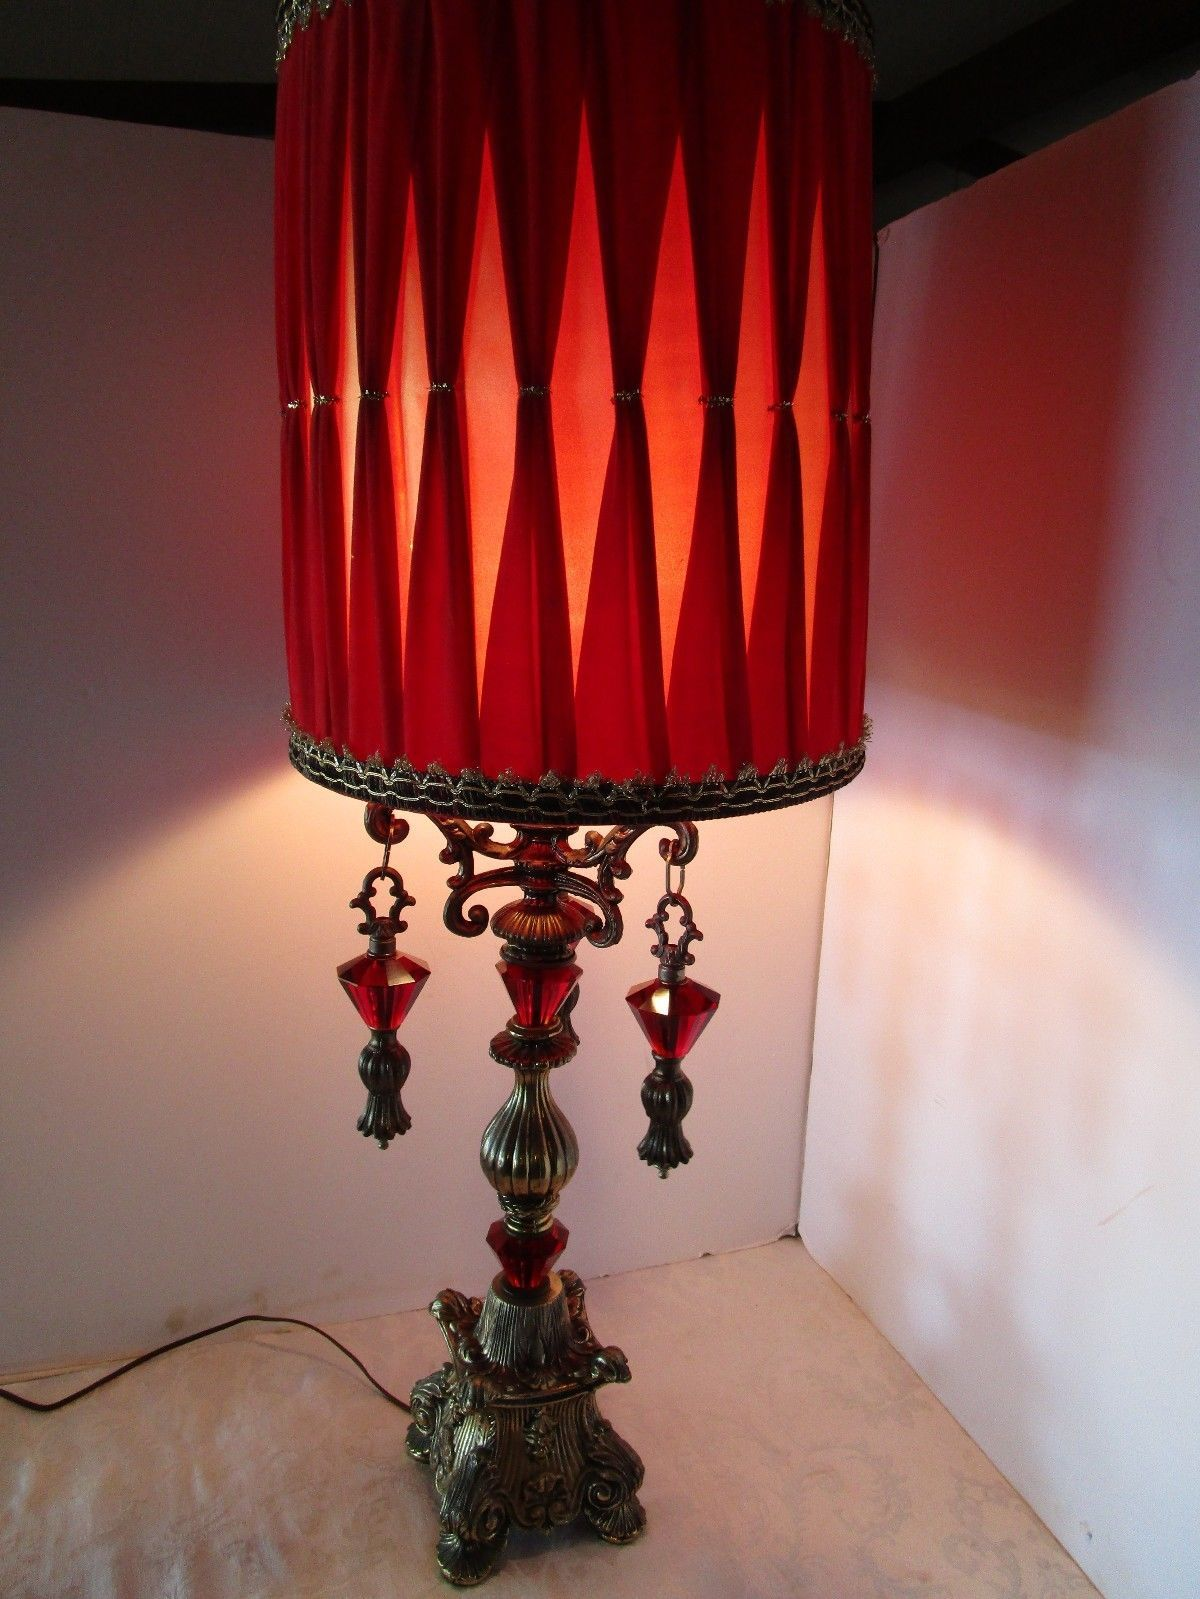 Table lamp hollywood regency ruby red glass prisms wvelvet shade table lamp hollywood regency ruby red glass prisms wvelvet shade original 1960s aloadofball Choice Image